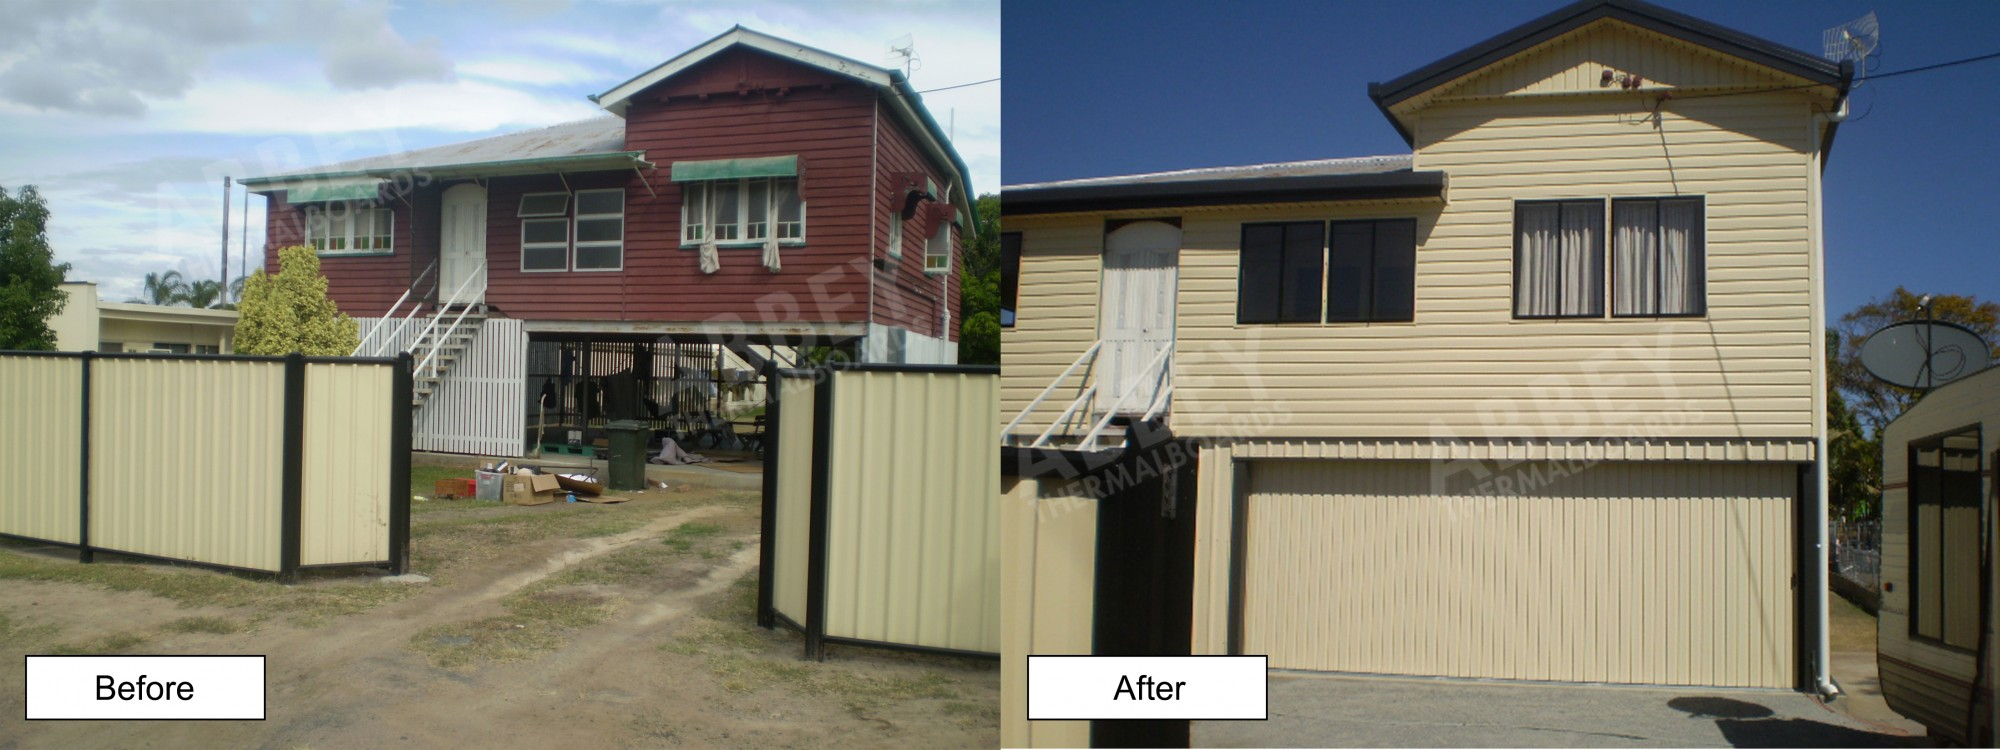 Before and after cladding shot of a Queenslander.